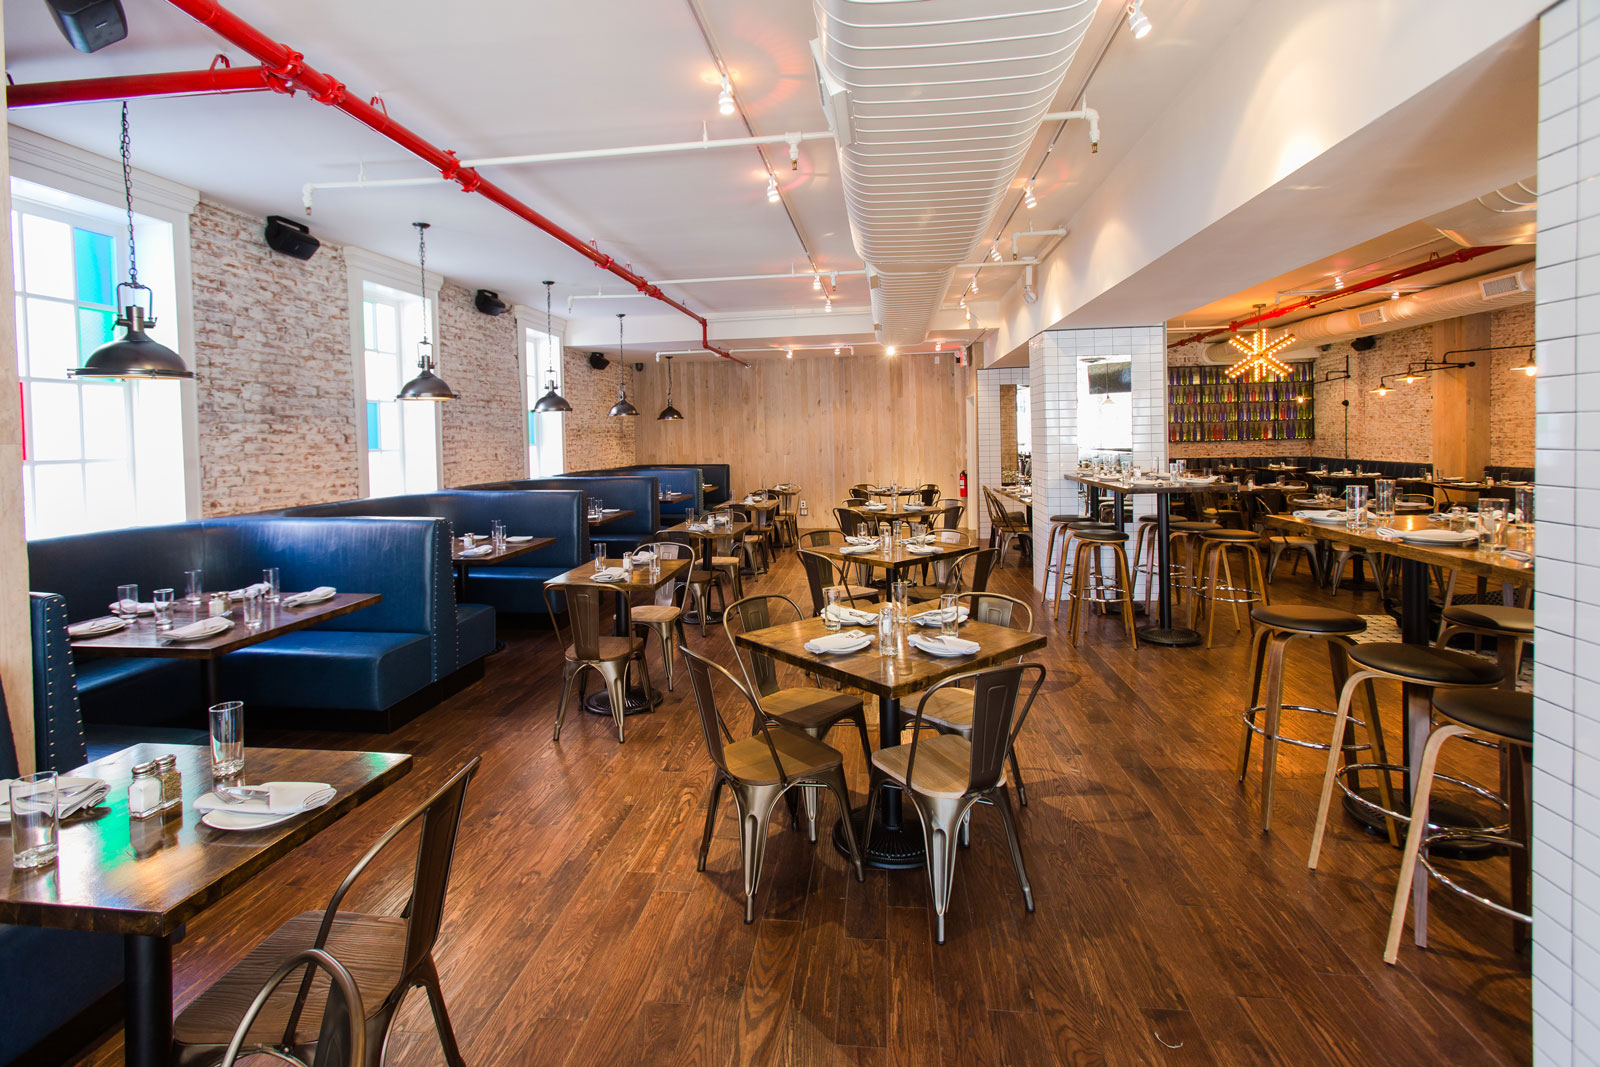 Harlem 39 s best american restaurant row house for Home restaurant